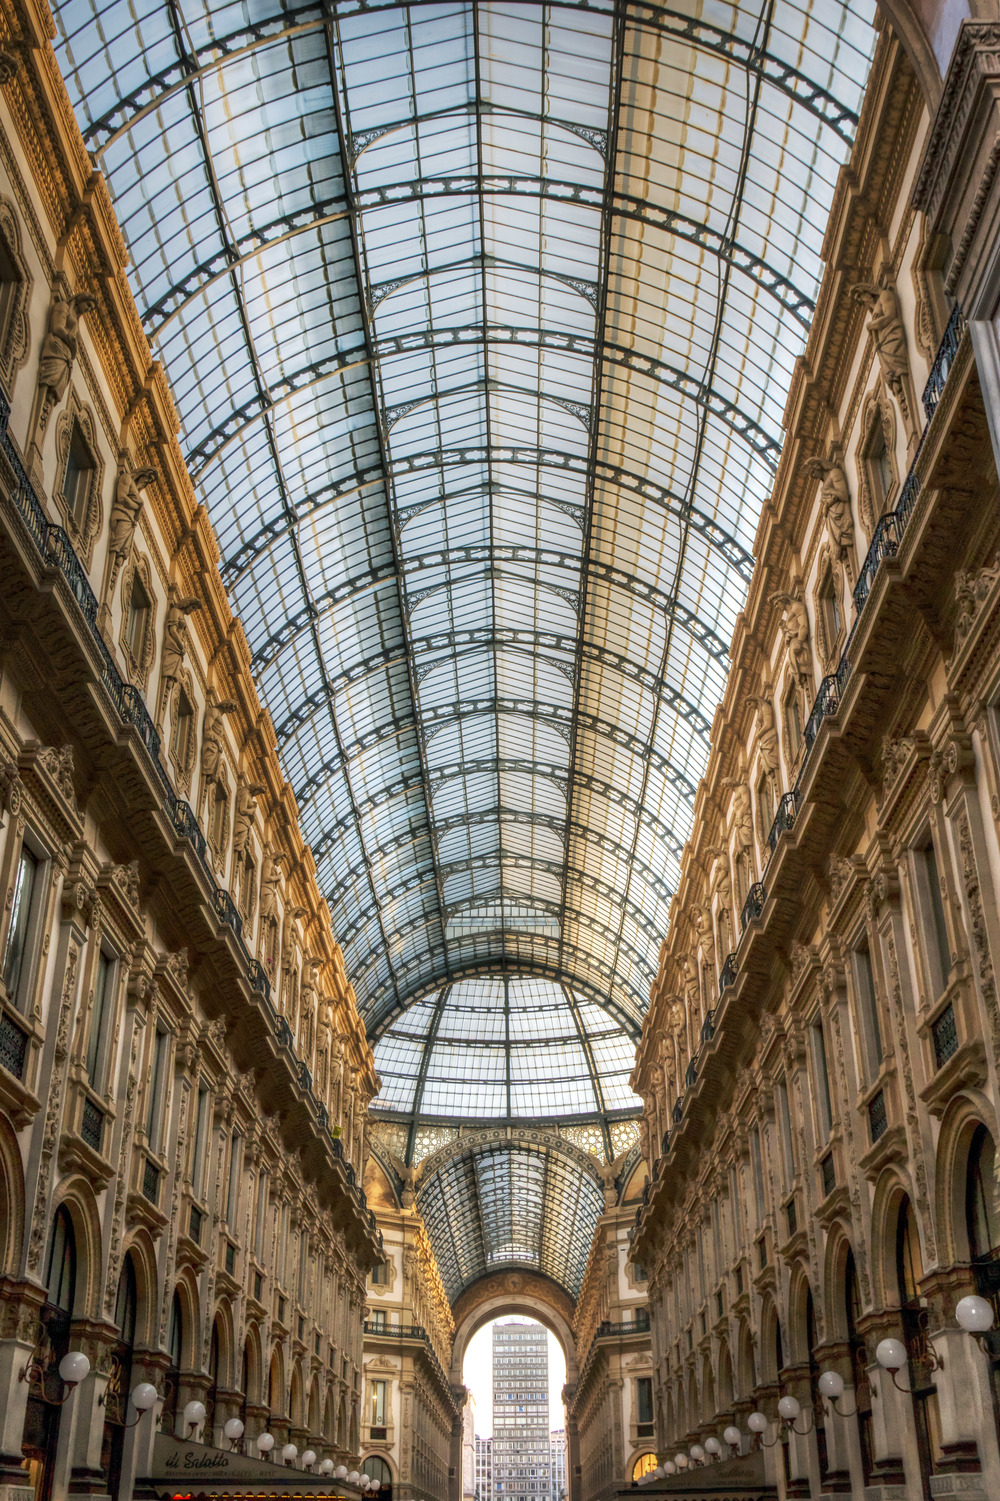 This was the shopping center, believe it or not, right next to the Cathedral. Duomo shopping center.